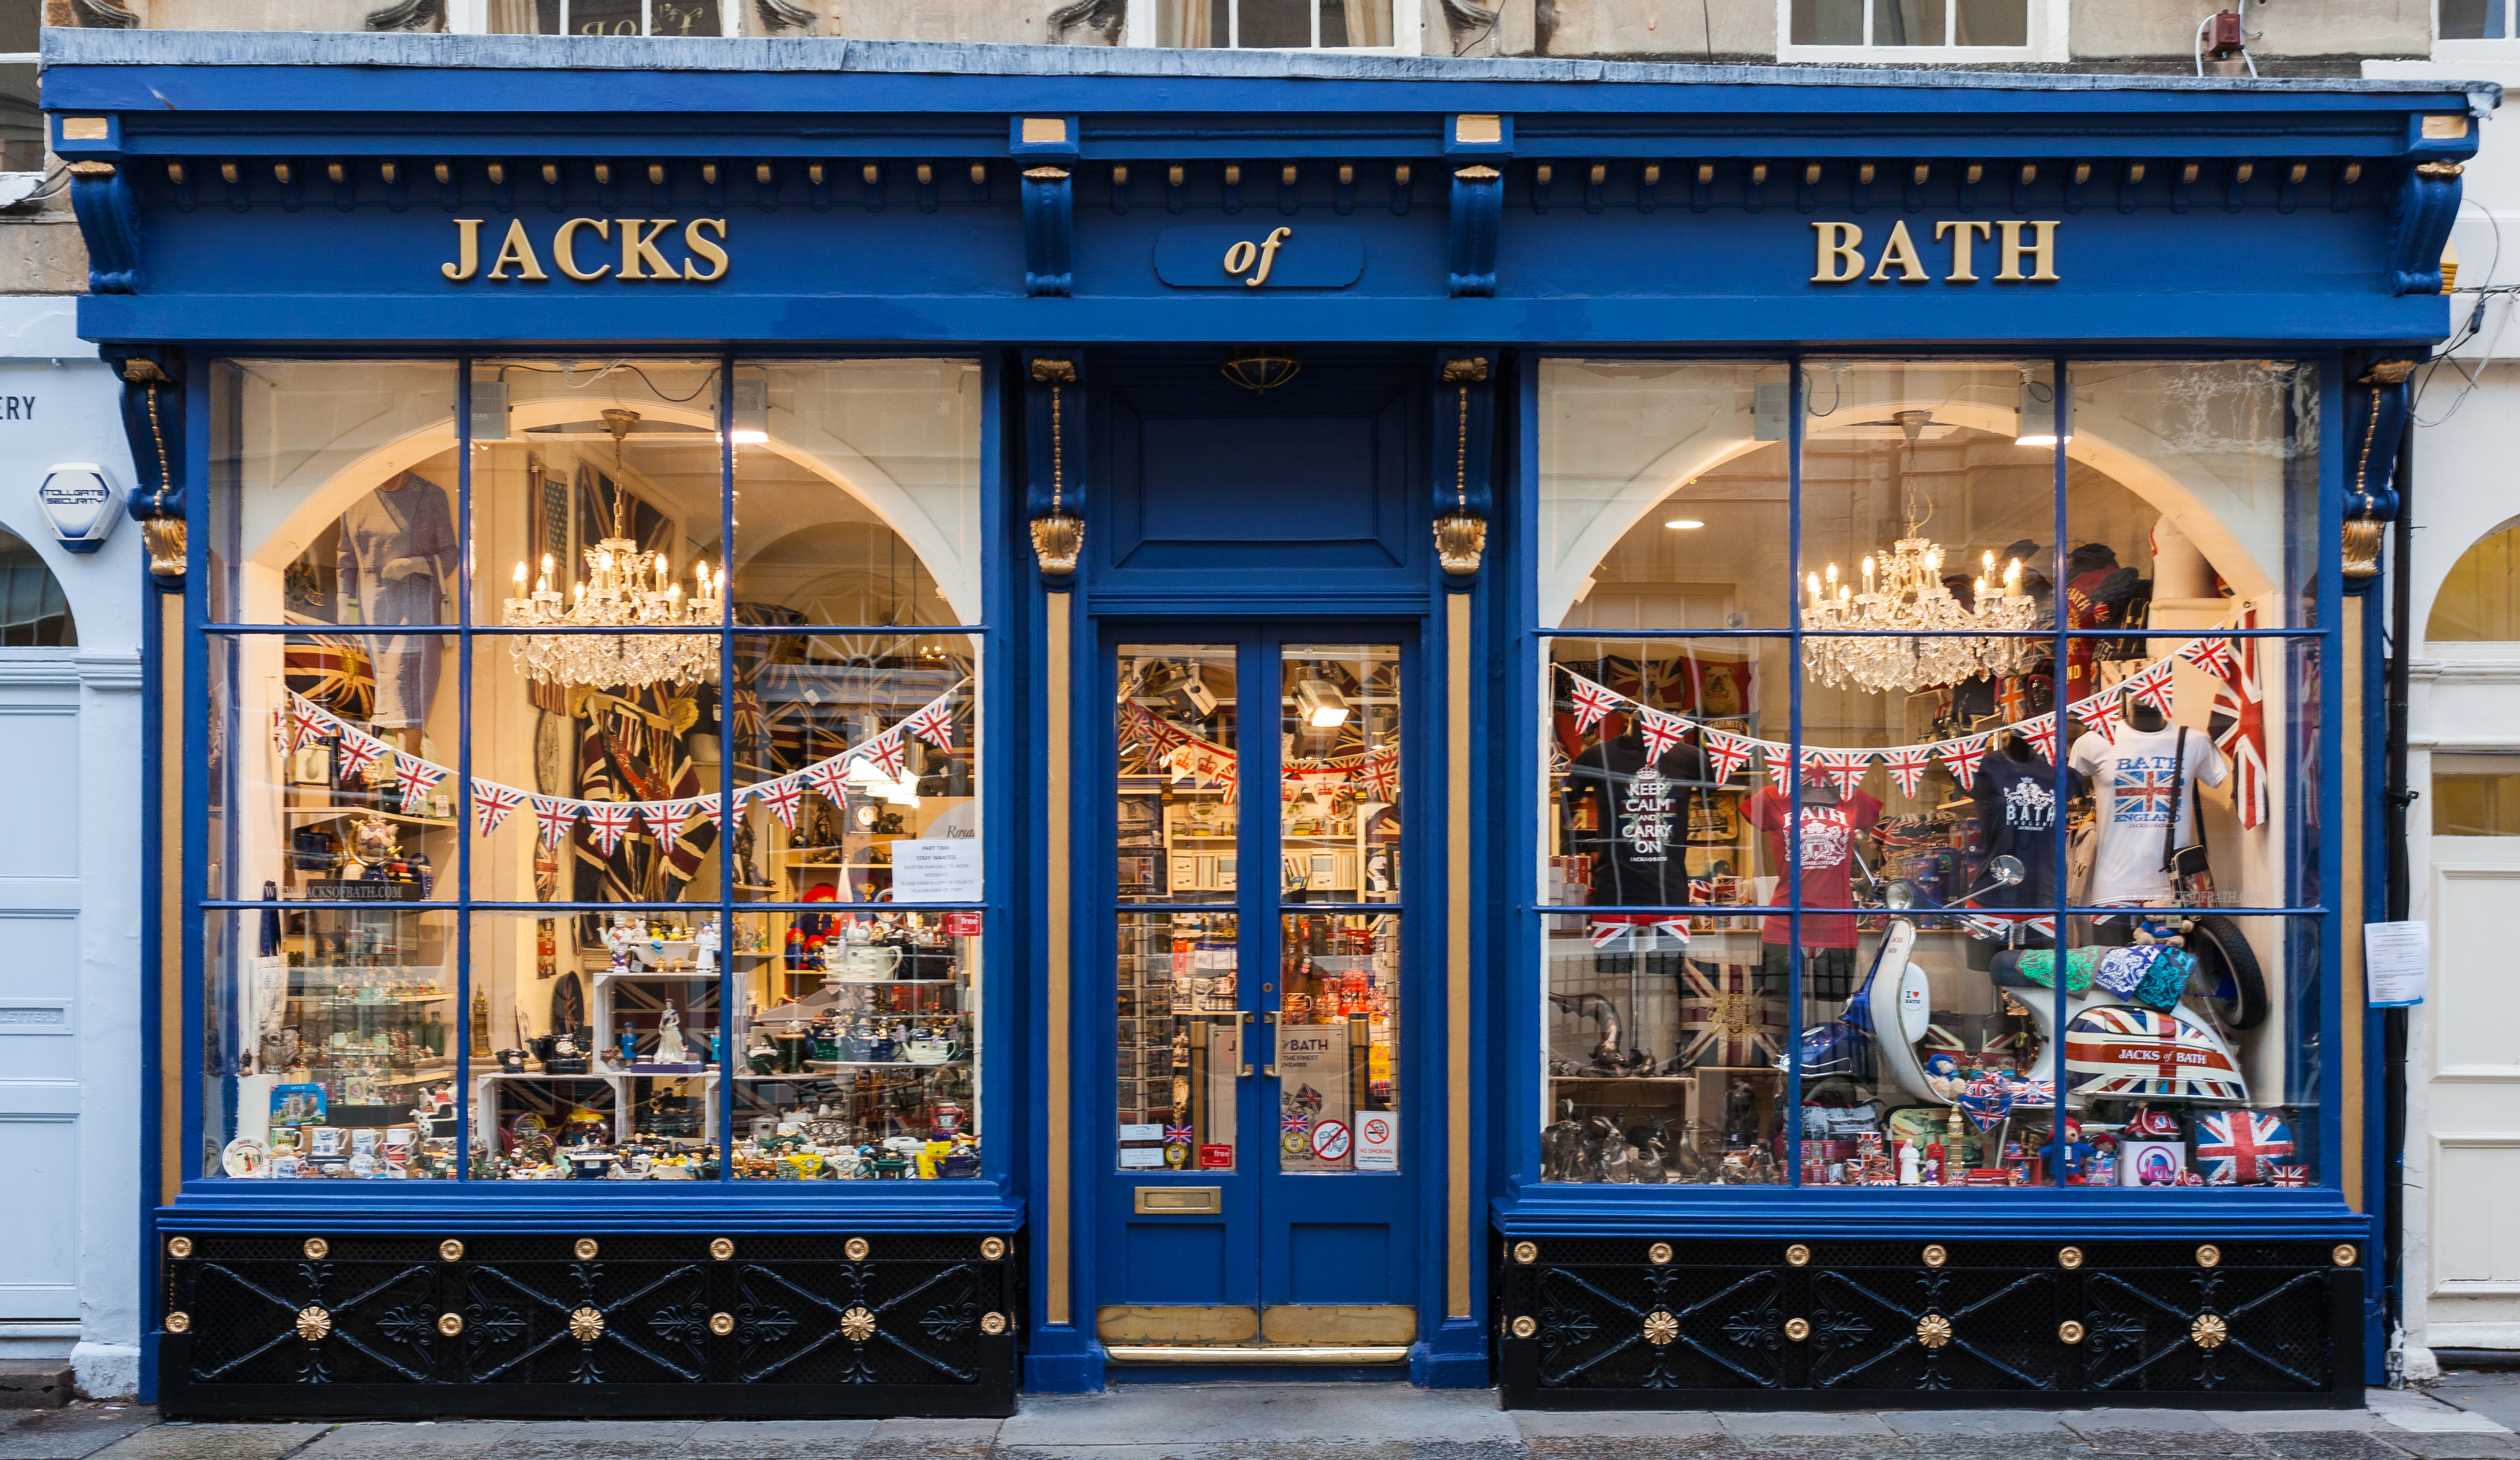 File:Tienda Jacks of Bath, Bath, Inglaterra, 2014-08-12, DD 48.JPG - Wikimedia Commons